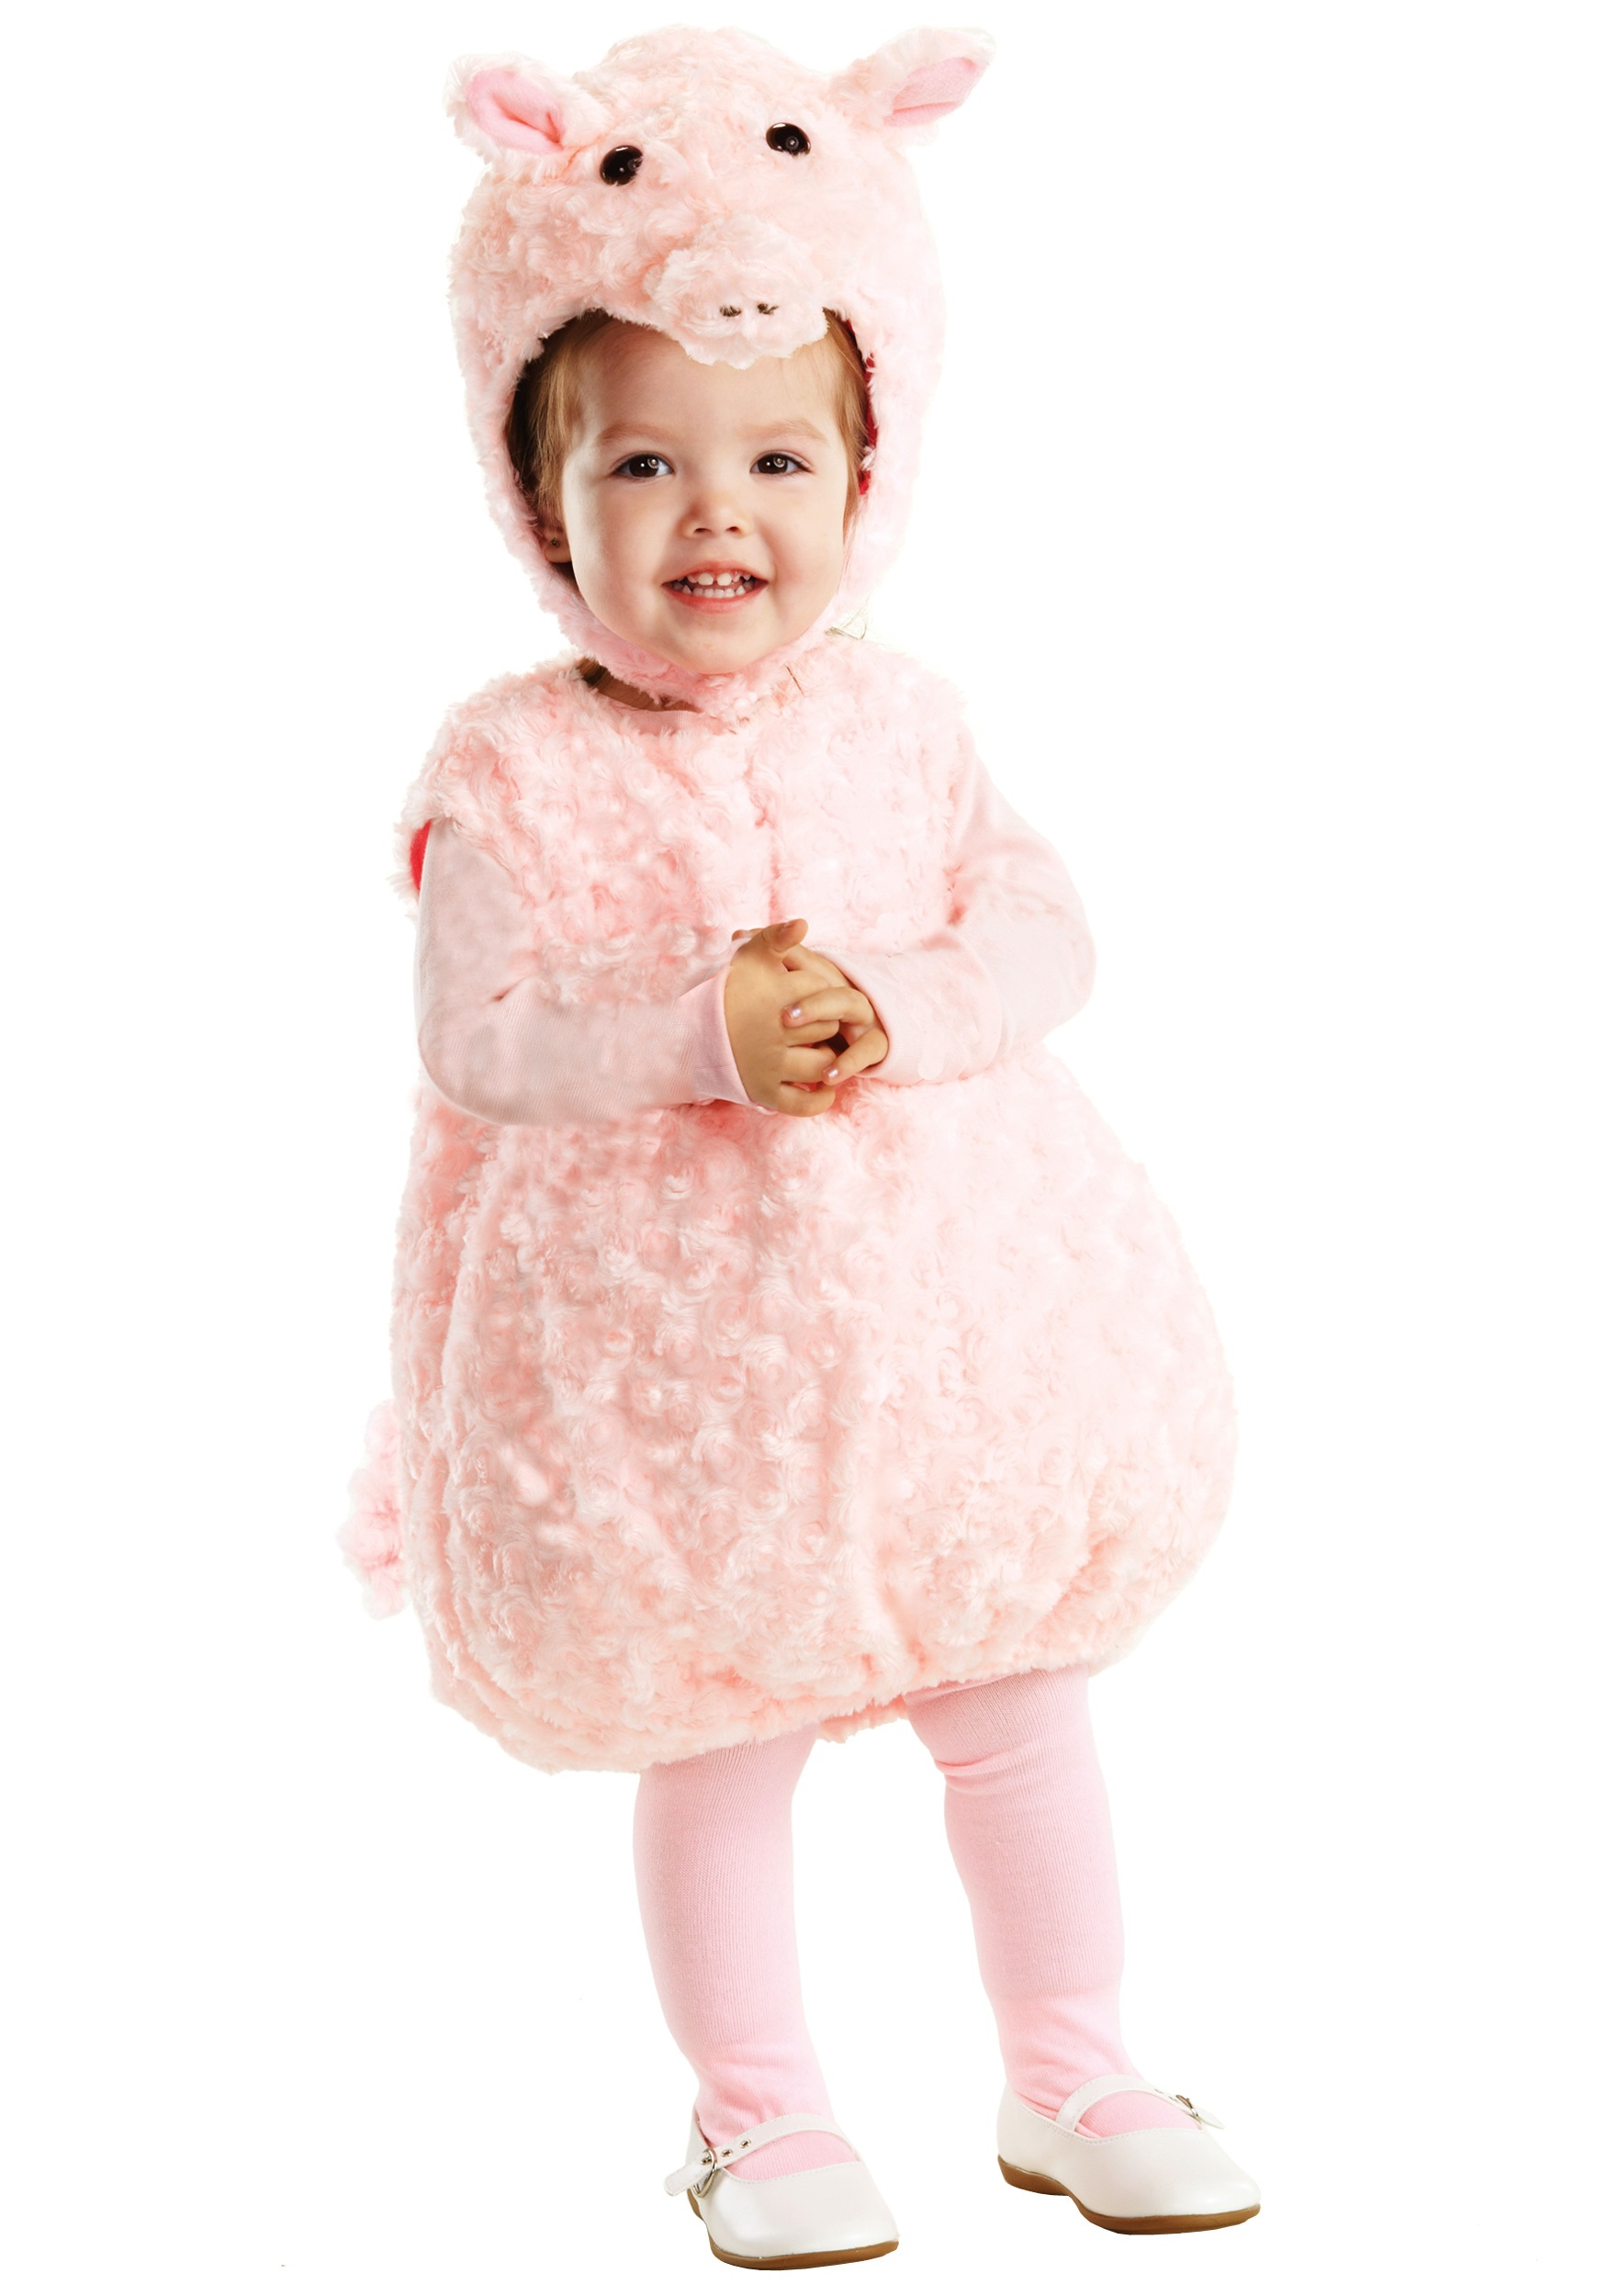 Toddler Pink Piglet Costume  sc 1 st  Halloween Costumes & Pig Costumes For Adults u0026 Kids - HalloweenCostumes.com